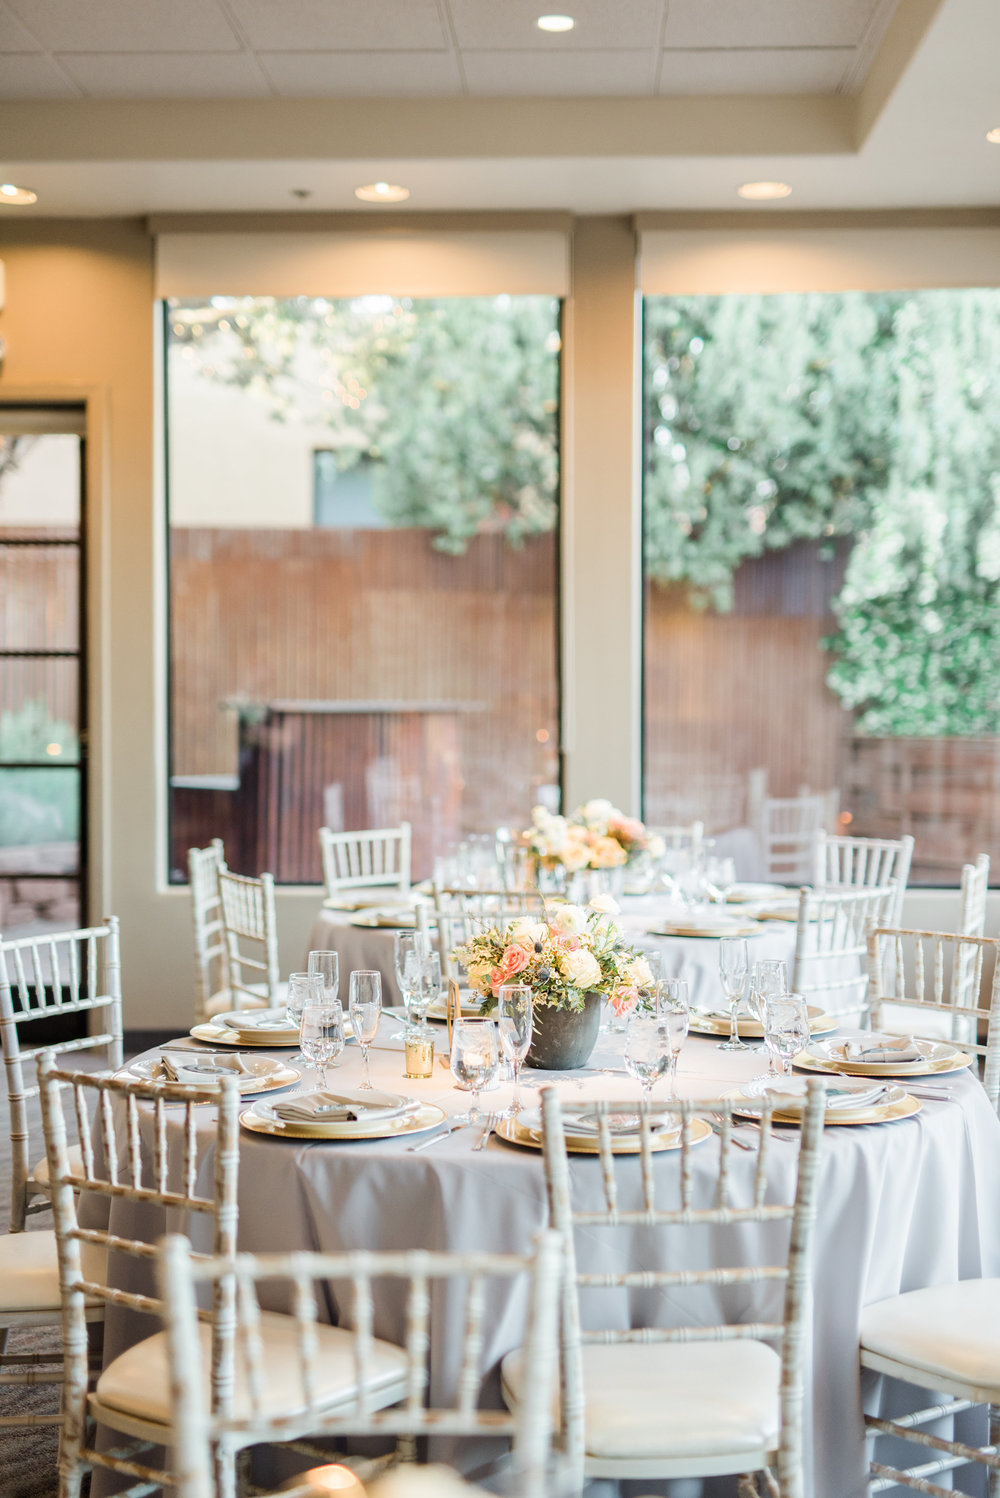 Boho Sedona Wedding - Reception Set-up